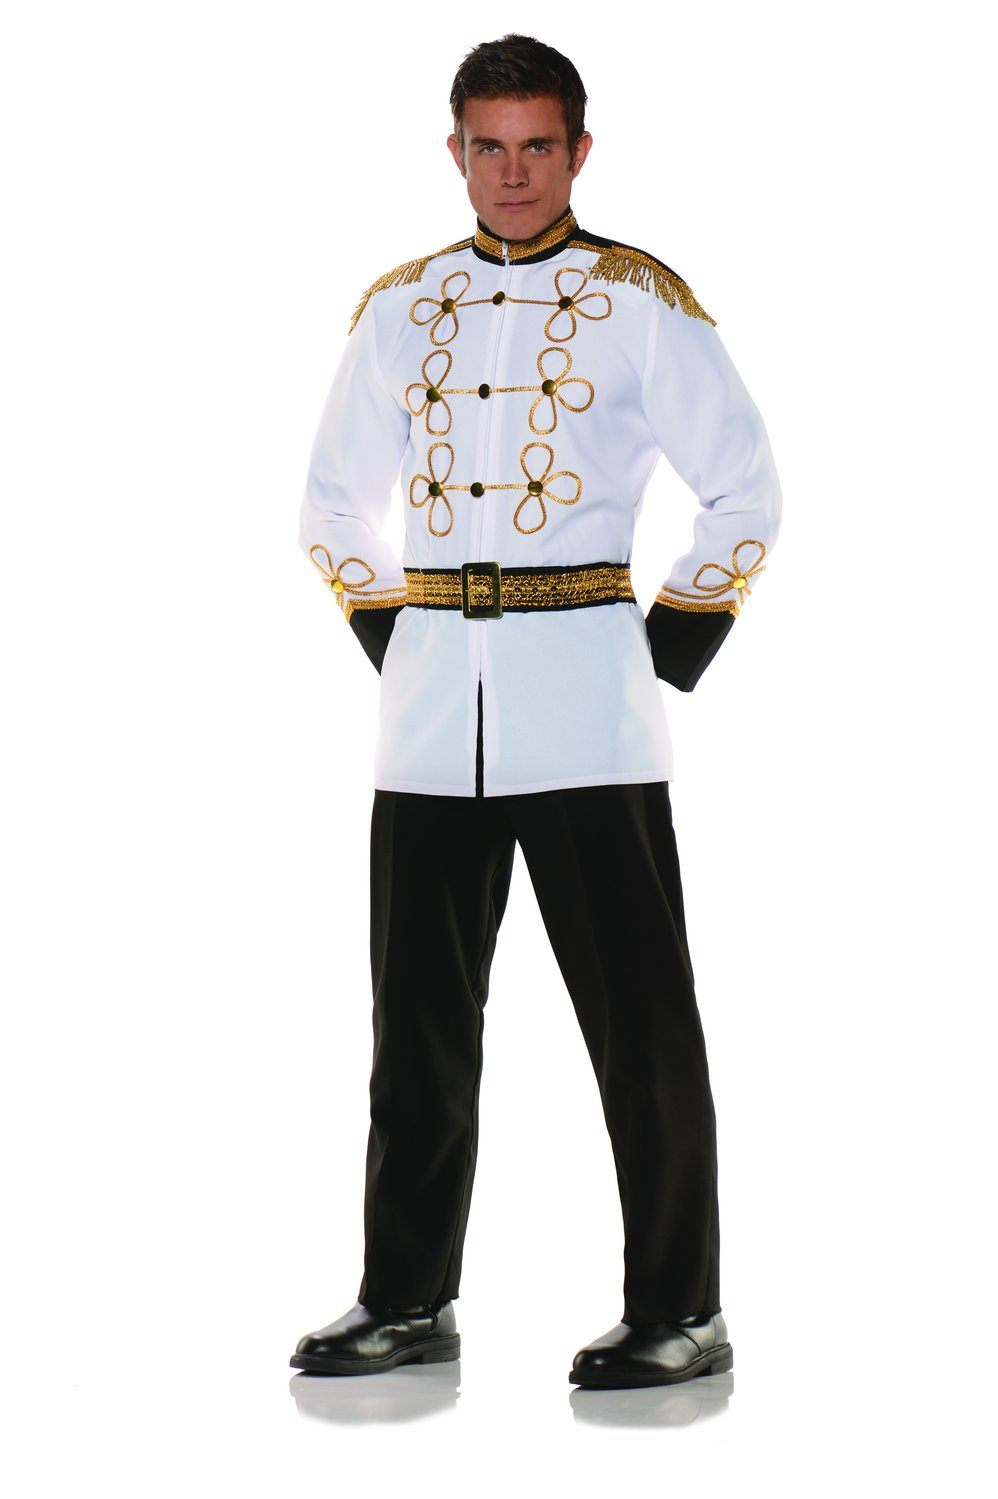 from Braylen adult prince charming costume